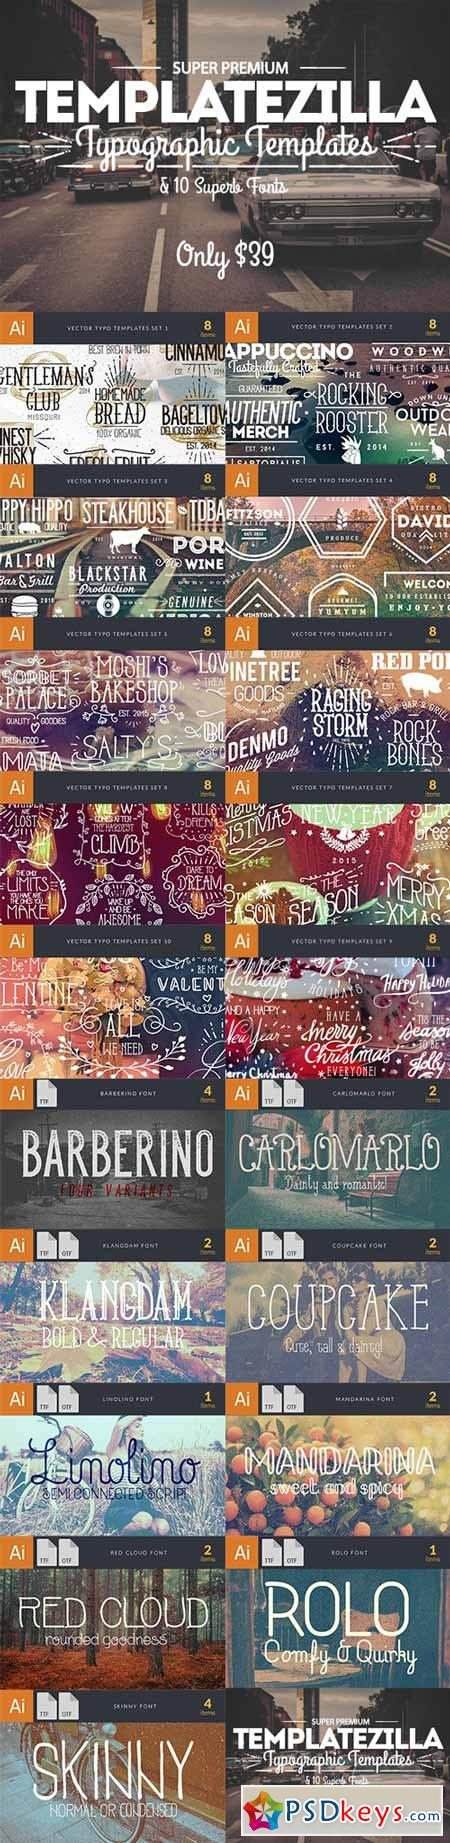 TemplateZilla Super Premium Typographic Templates & 10 Superb Fonts